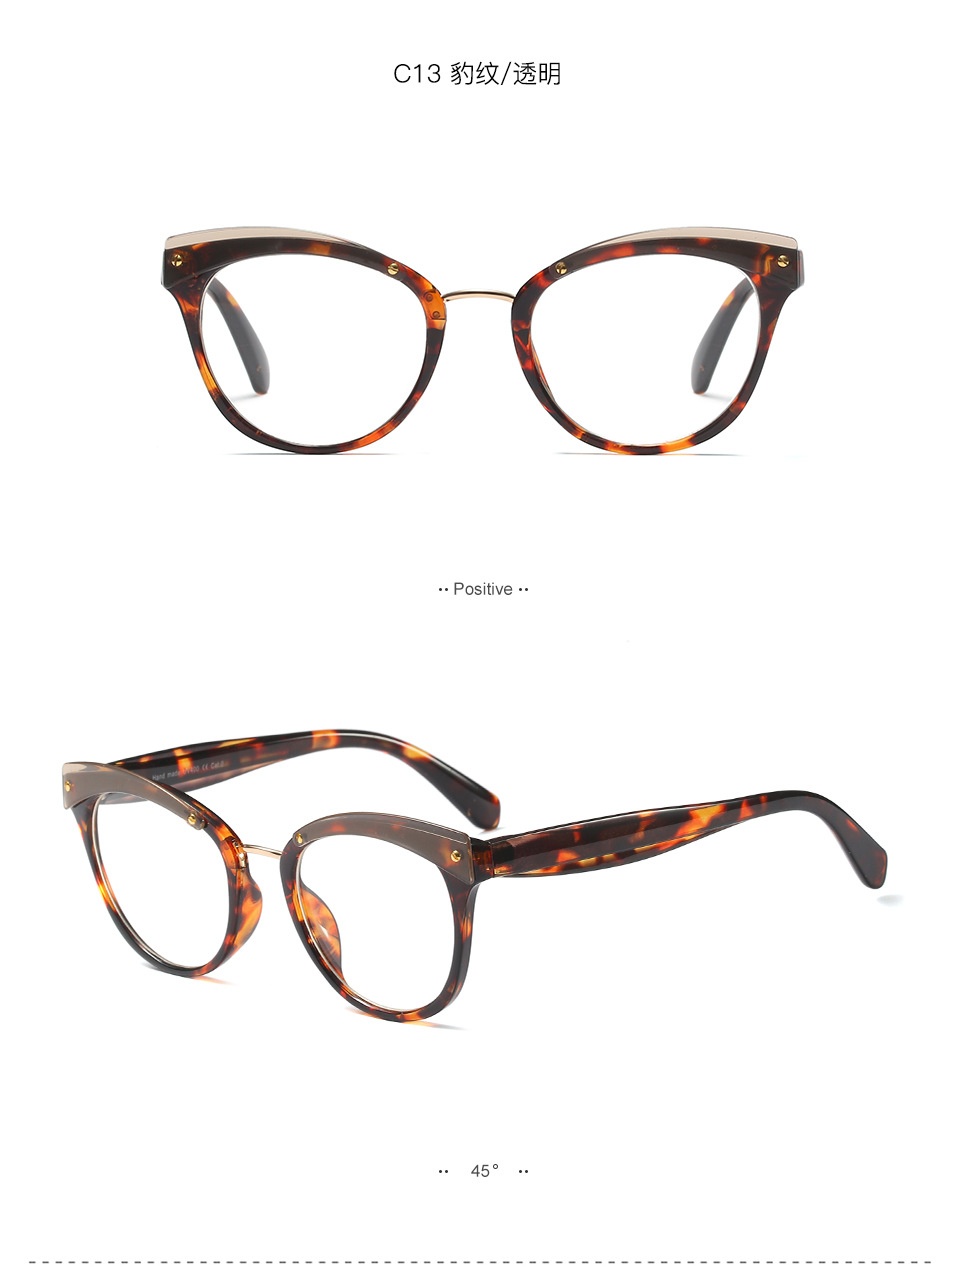 Alloy Vintage  glasses  (C1 wine red) NHFY0632-C1-wine-red